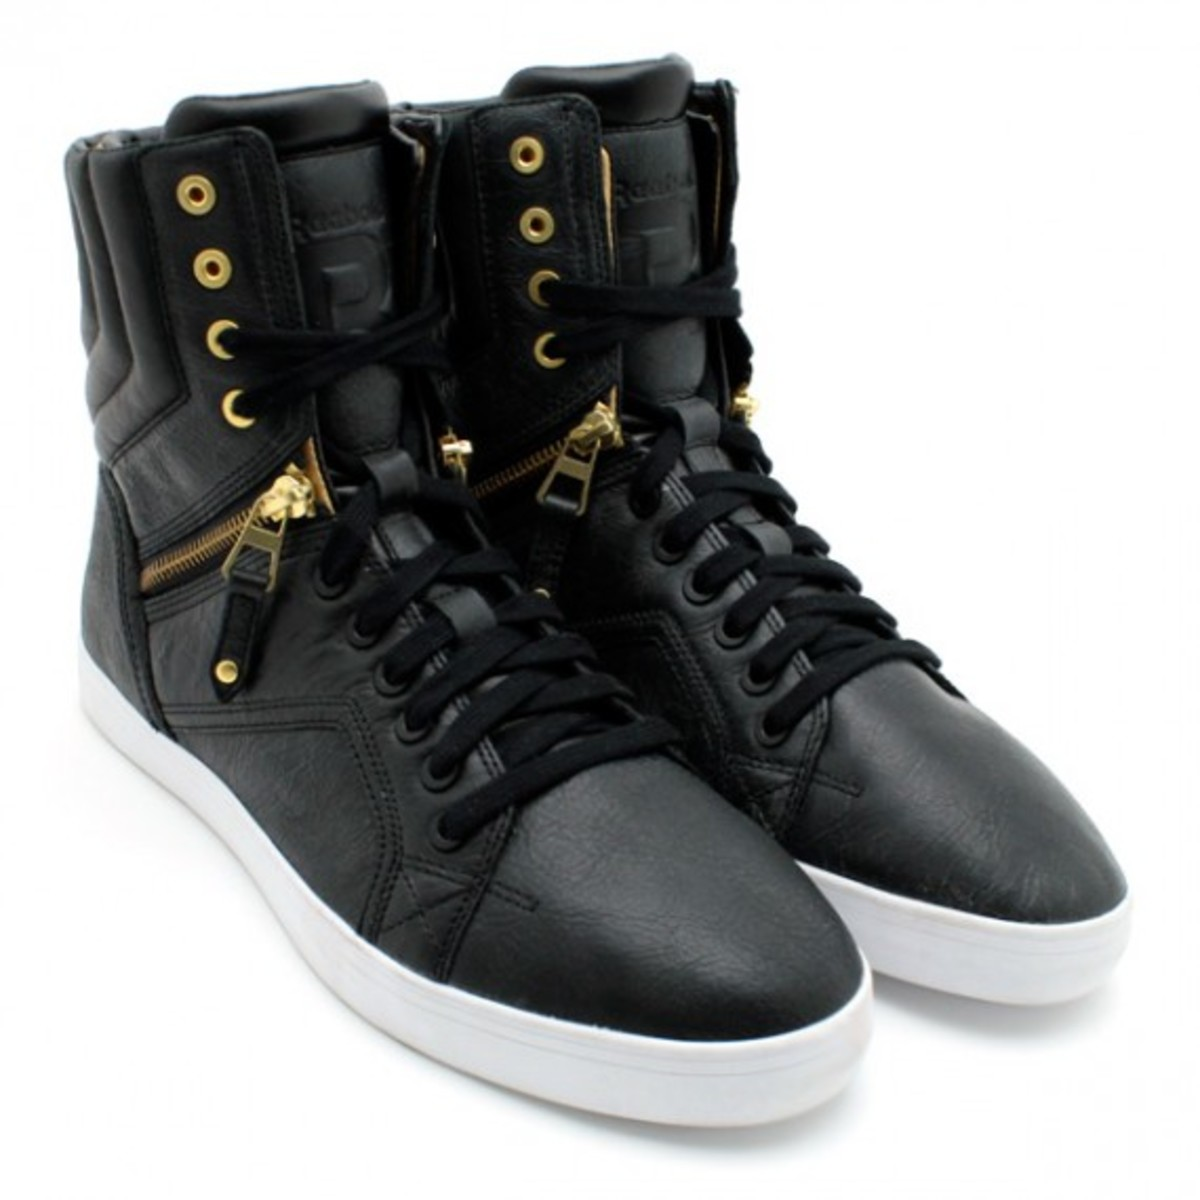 swizz-beatz-x-reebok-time-to-show-zip-boots-2